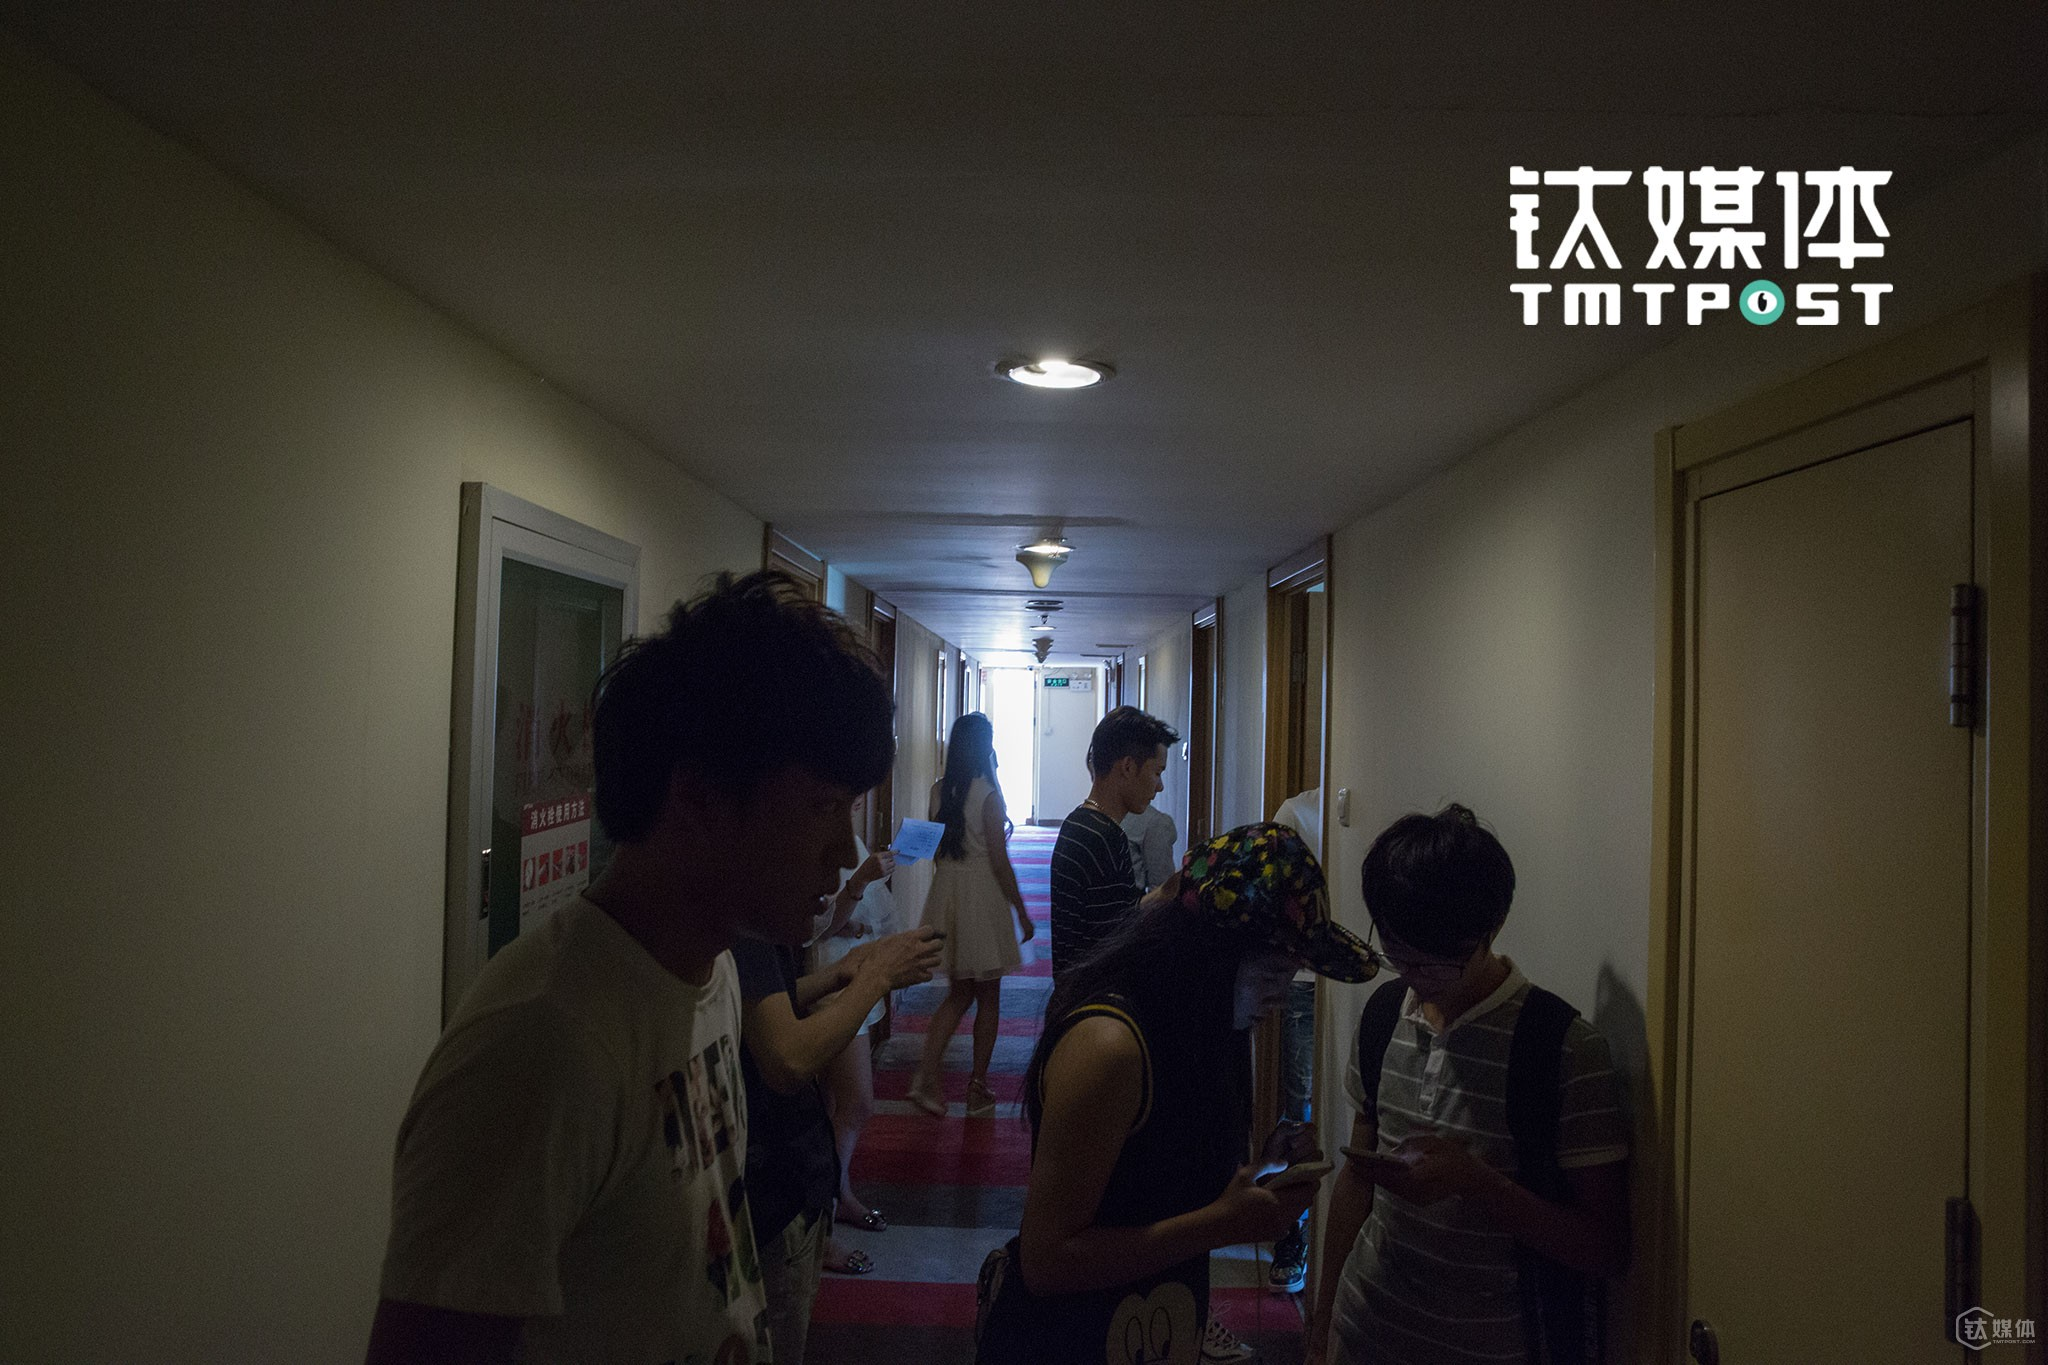 It was August, 29th, 2016. The crew of an internet big film was holding an audition at Piao Home Inn. Interviewees who were waiting for the audition were trying to memorize the lines.